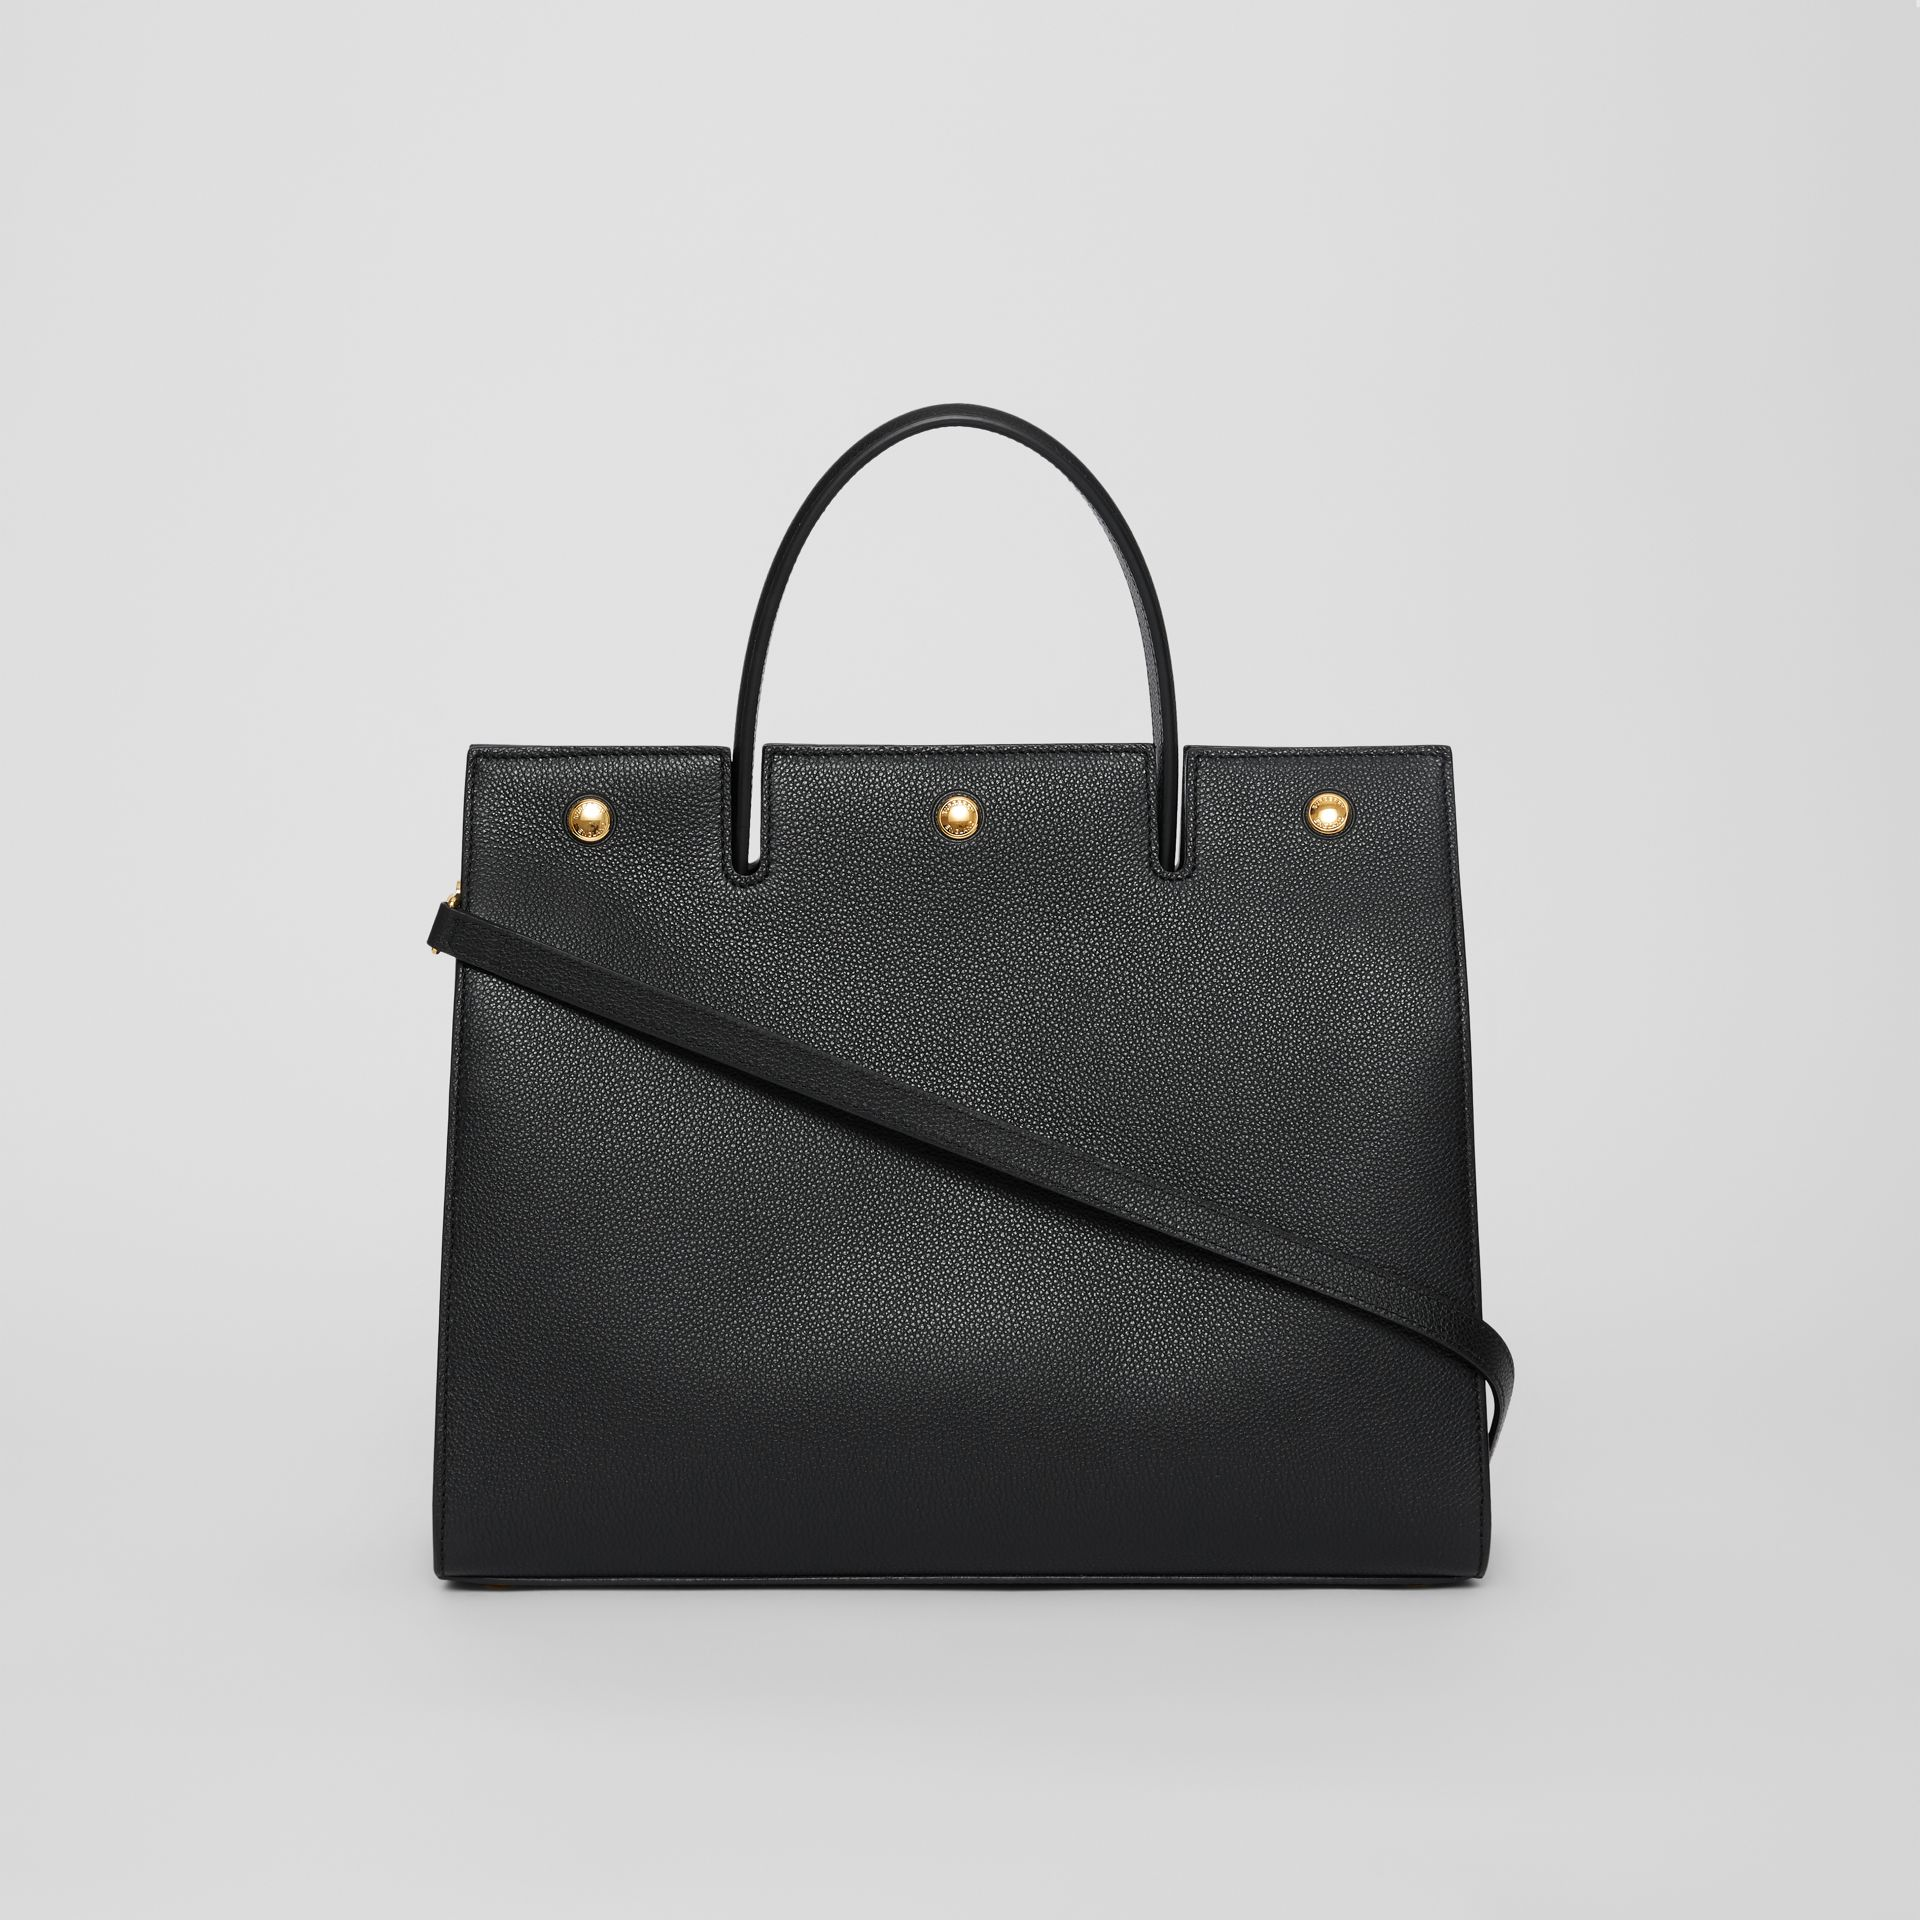 Medium Leather Title Bag in Black - Women | Burberry - gallery image 5